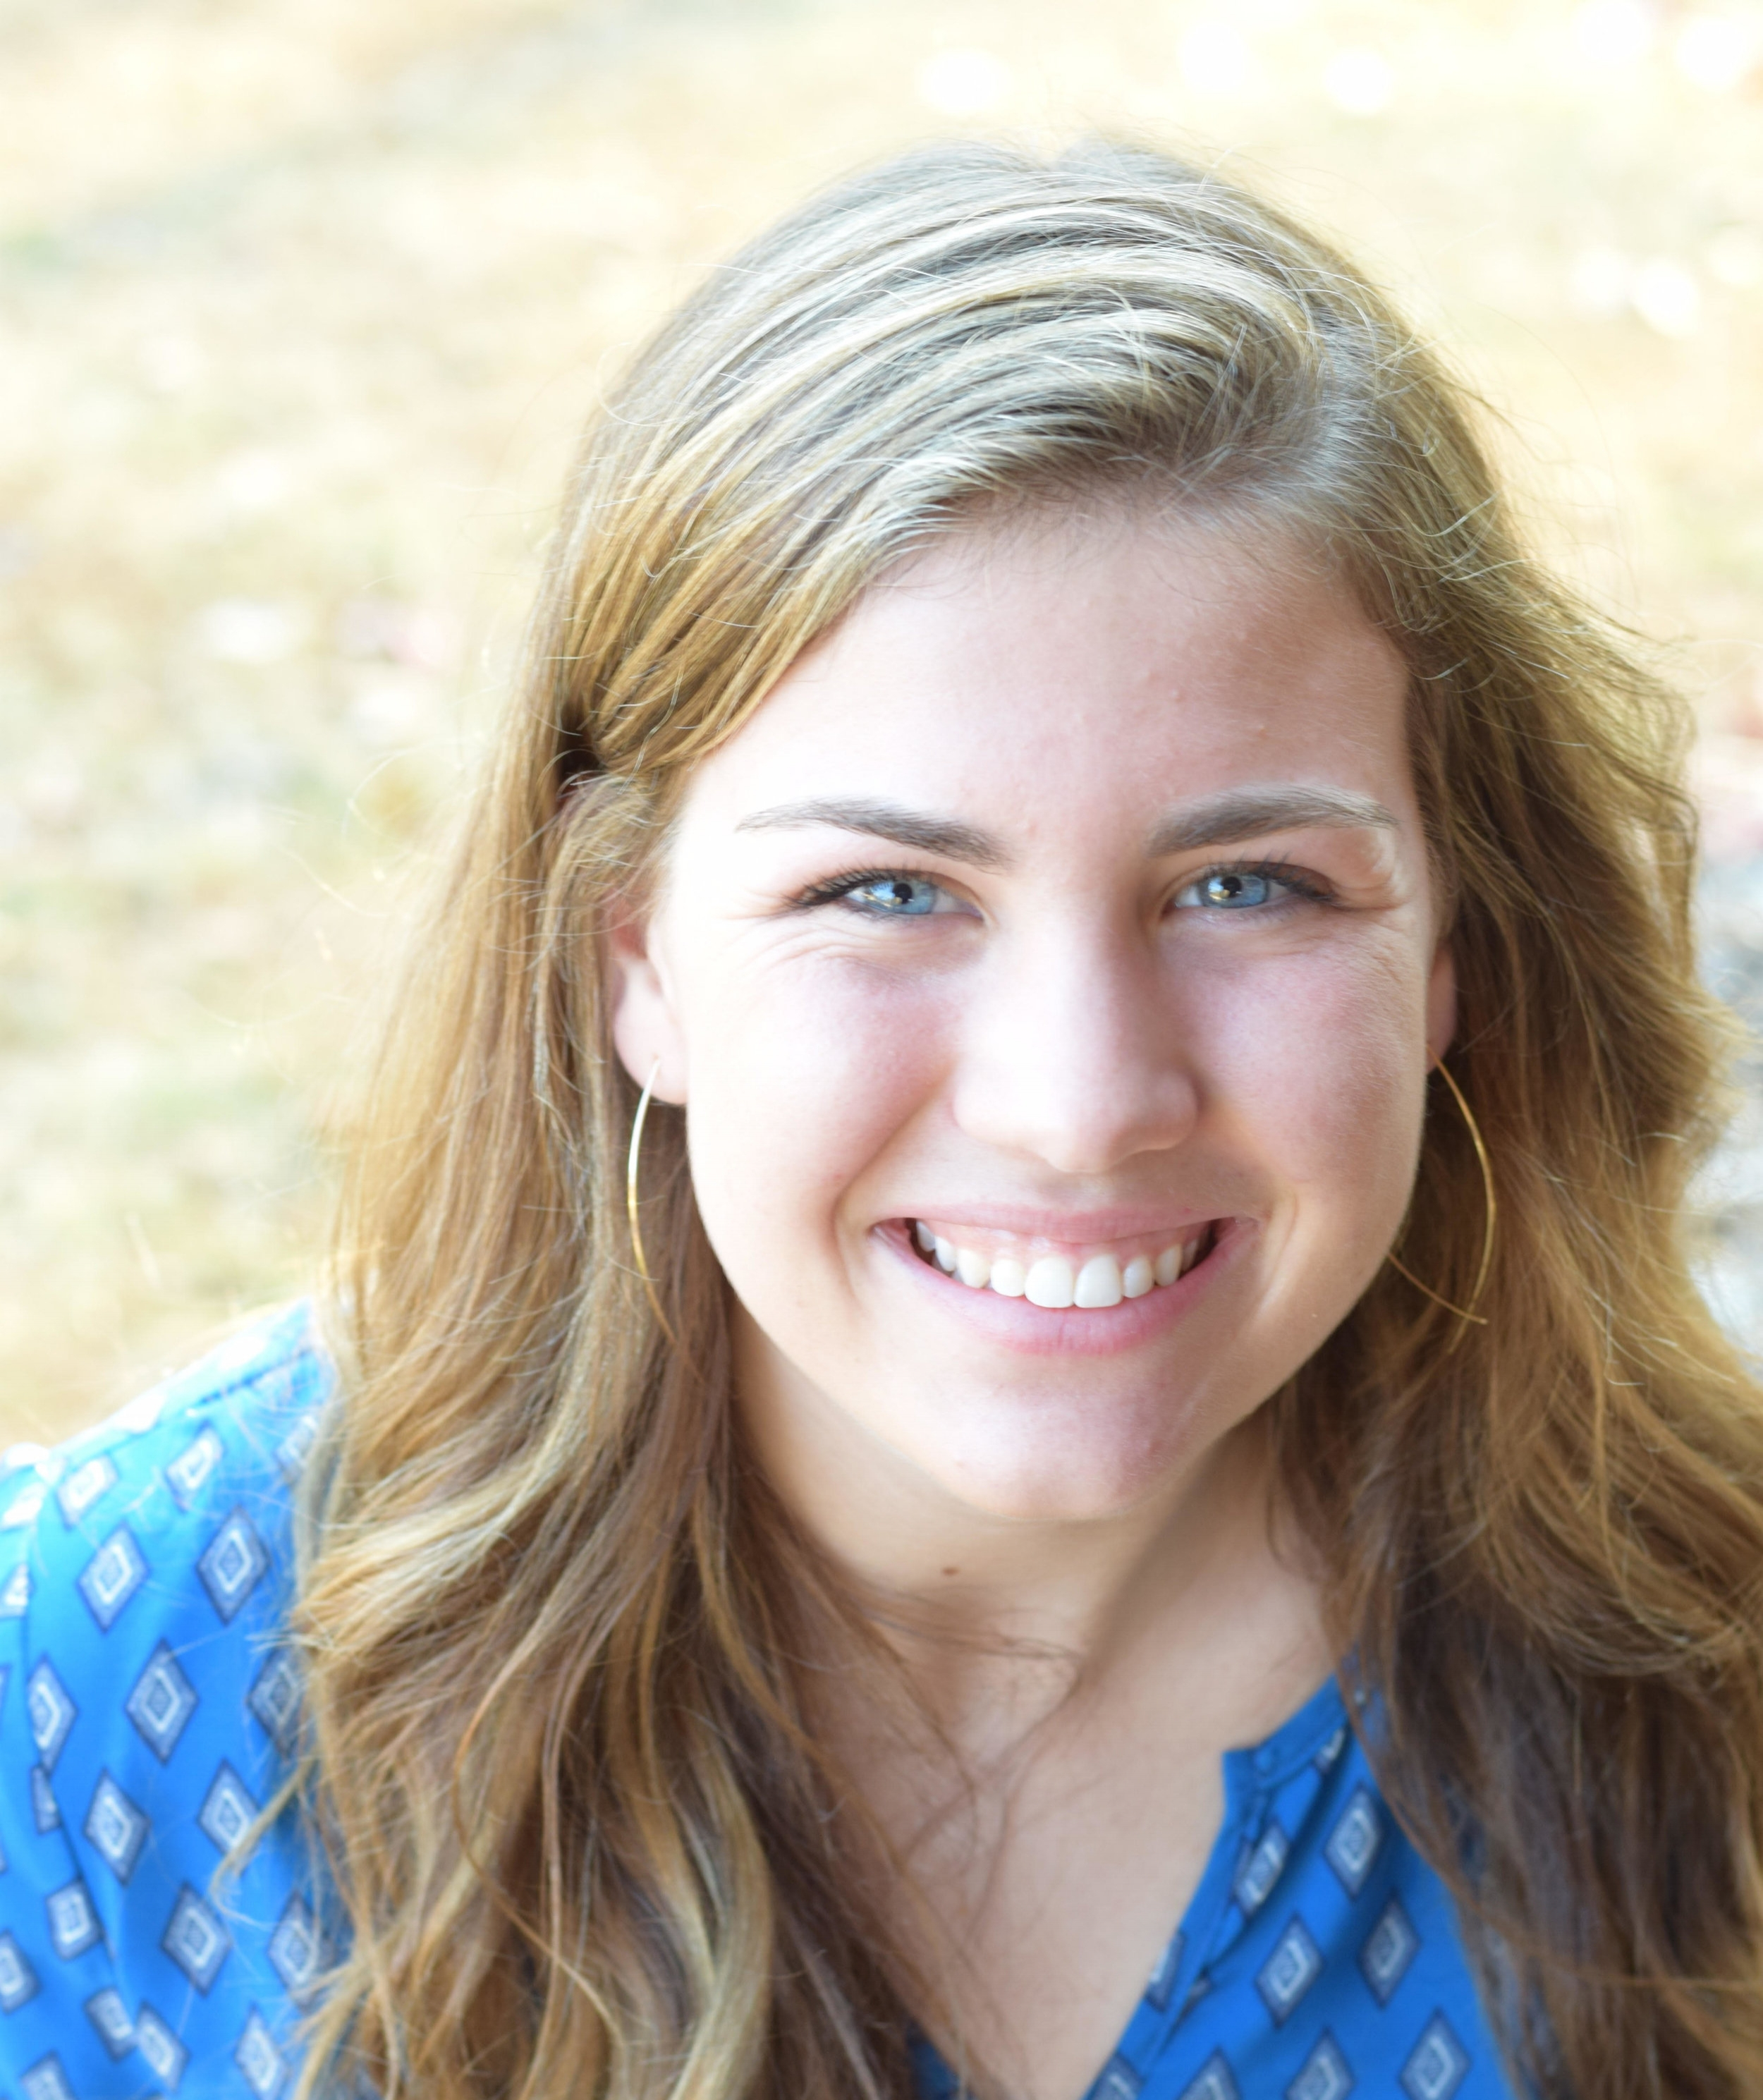 Morgan Barney  is a junior Maclellan Scholar at Covenant College, currently studying international studies. She co-founded Save Our Sisters, an organization dedicated to fighting human trafficking in Moldova, and advocates for women trapped in sex slavery.